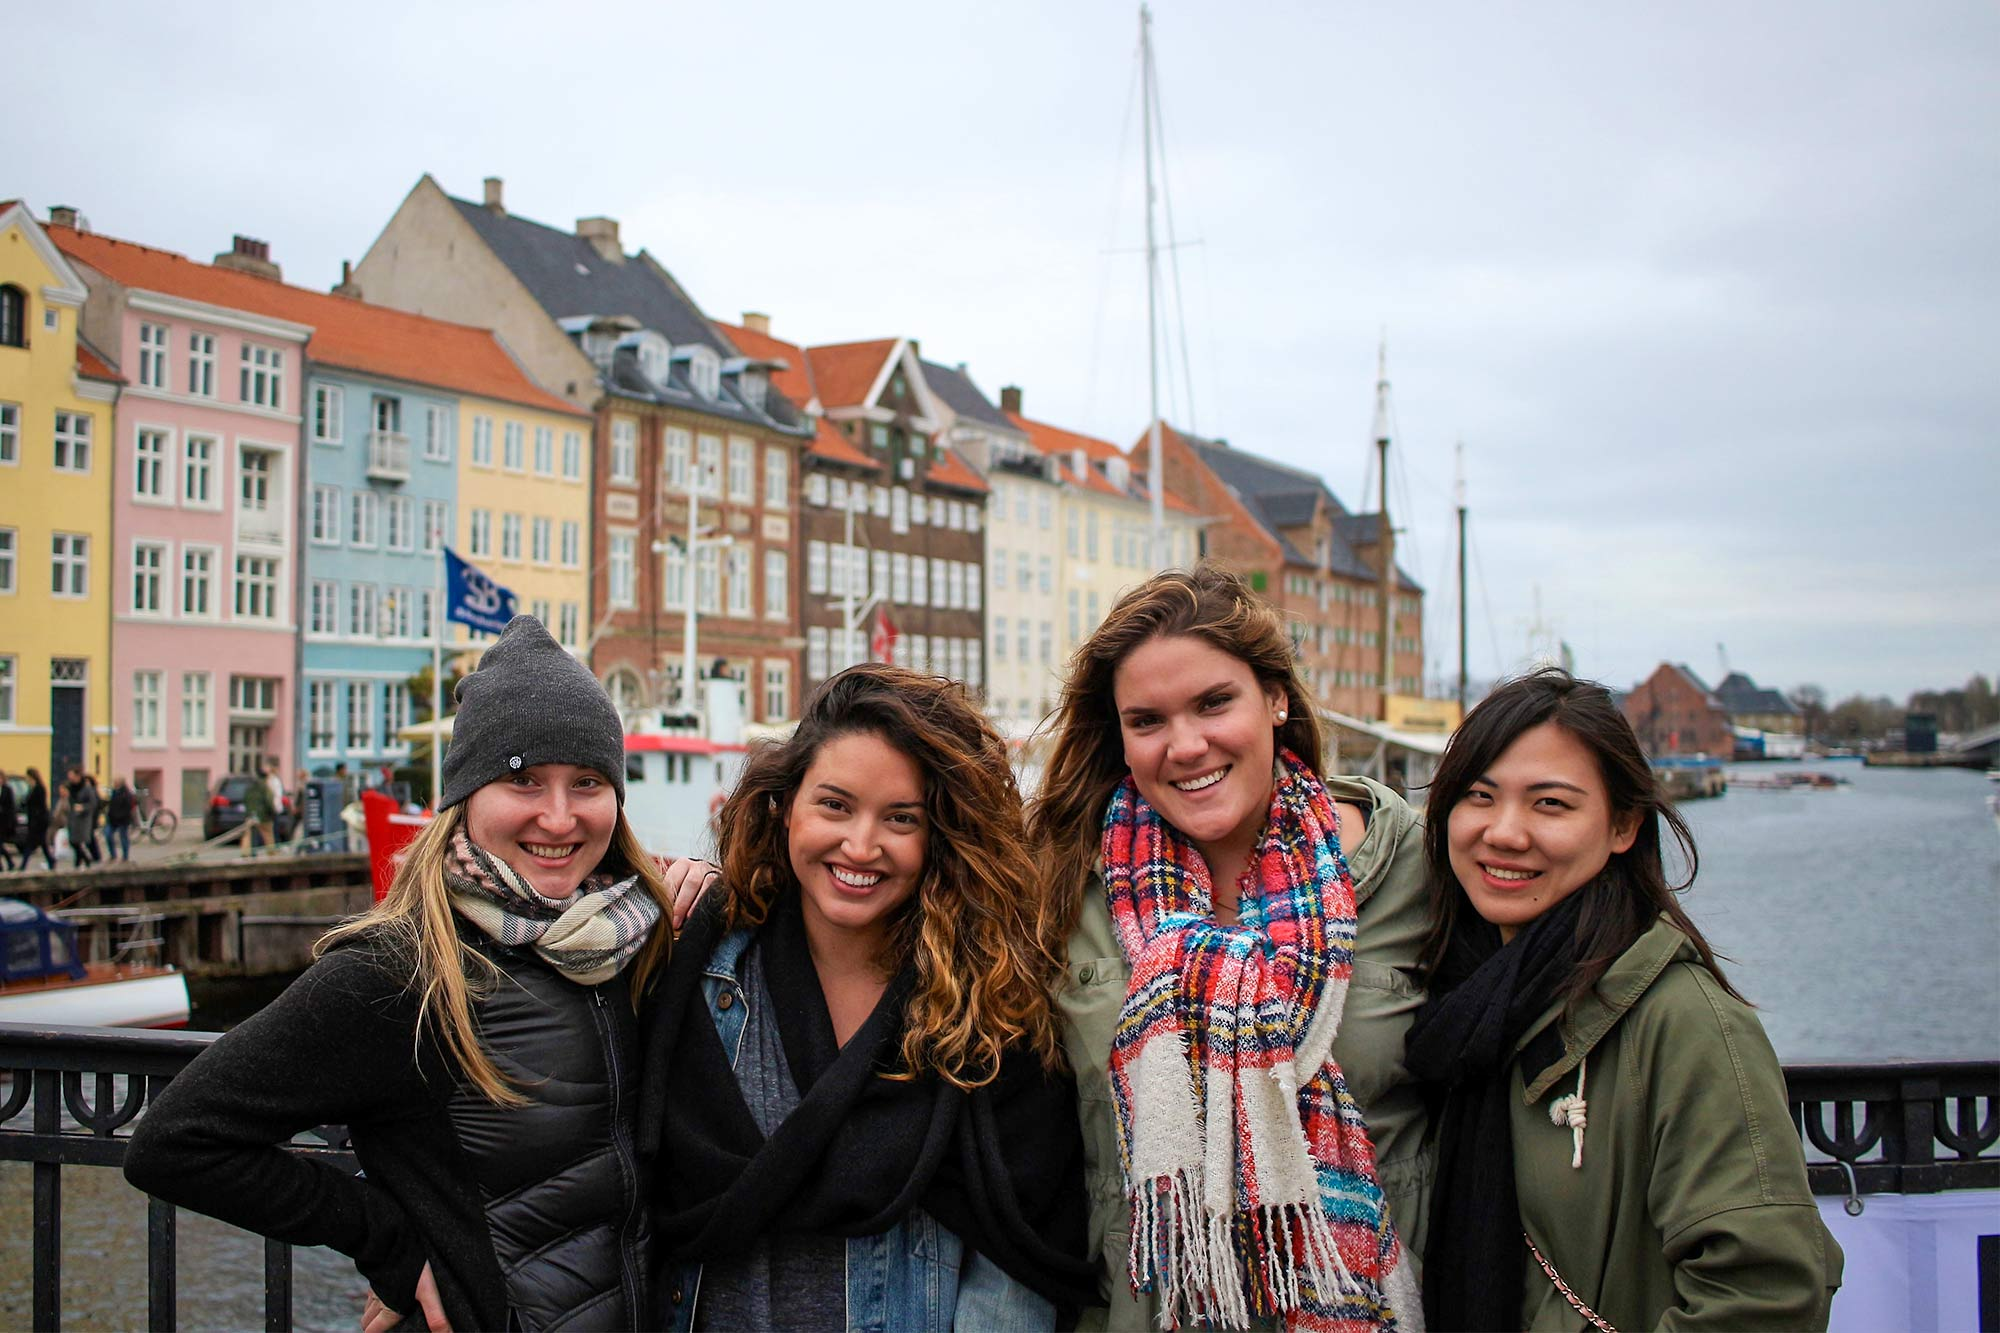 Prochna, third from left, with classmates in Copenhagen.